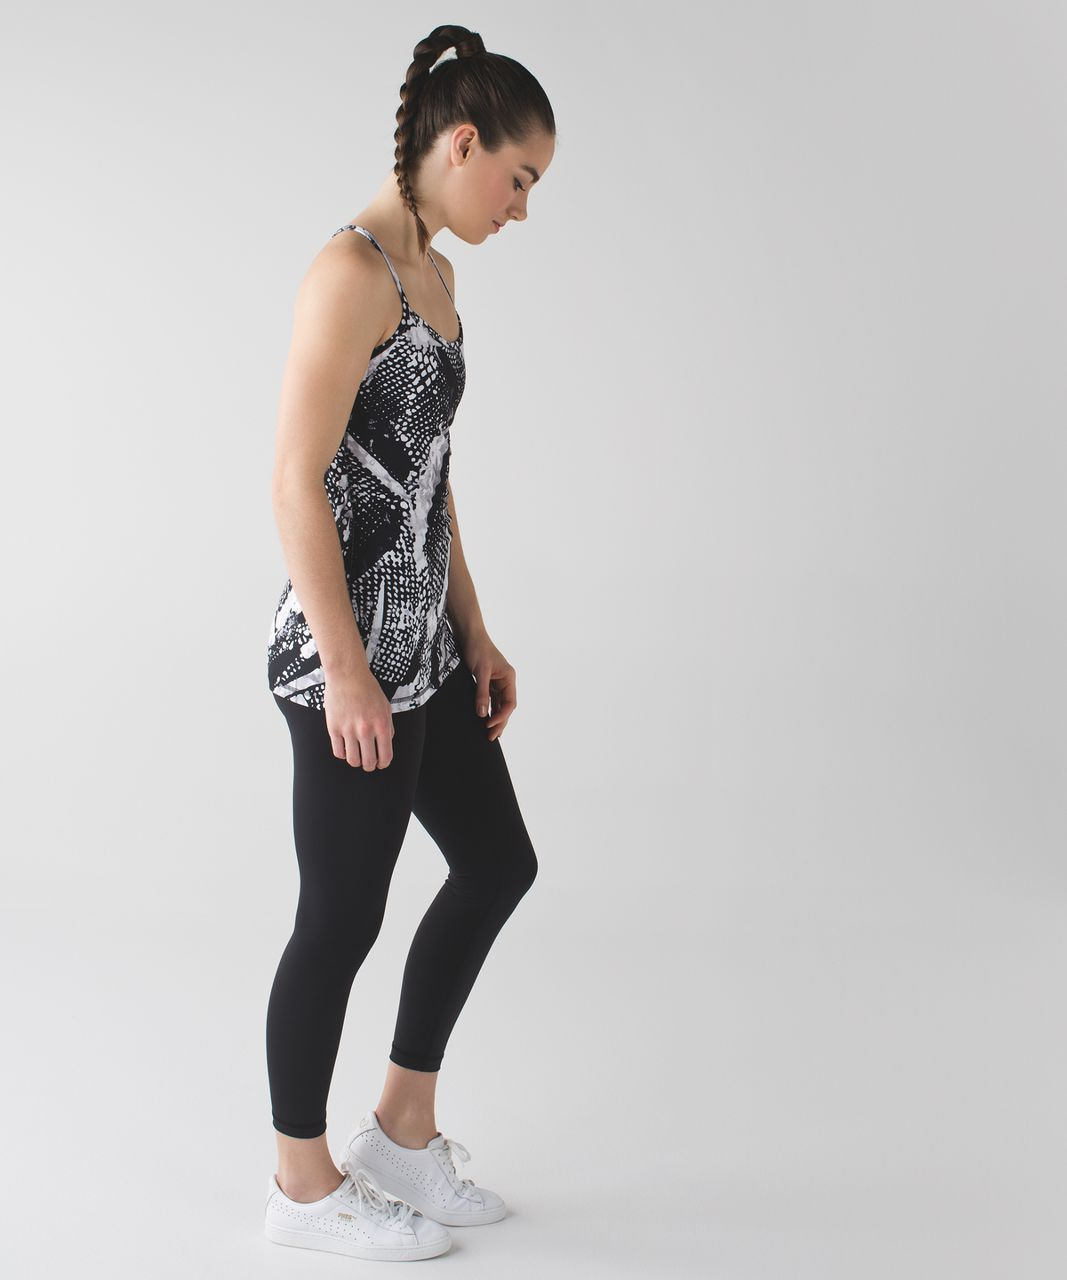 Lululemon Power Y Tank *Luon - Static Mist White Black